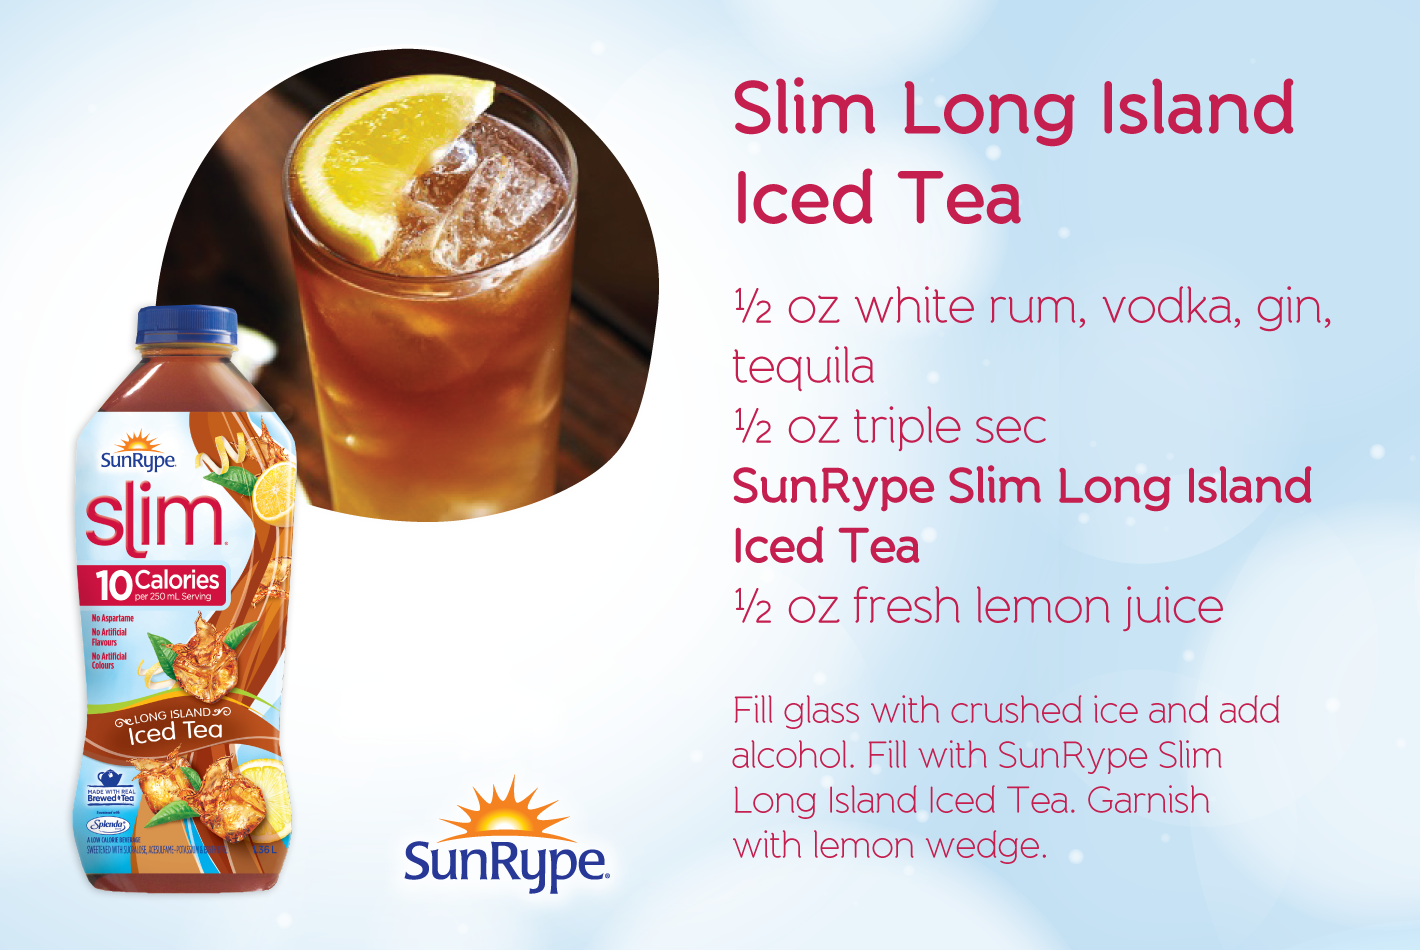 Slim Long Island Iced Tea